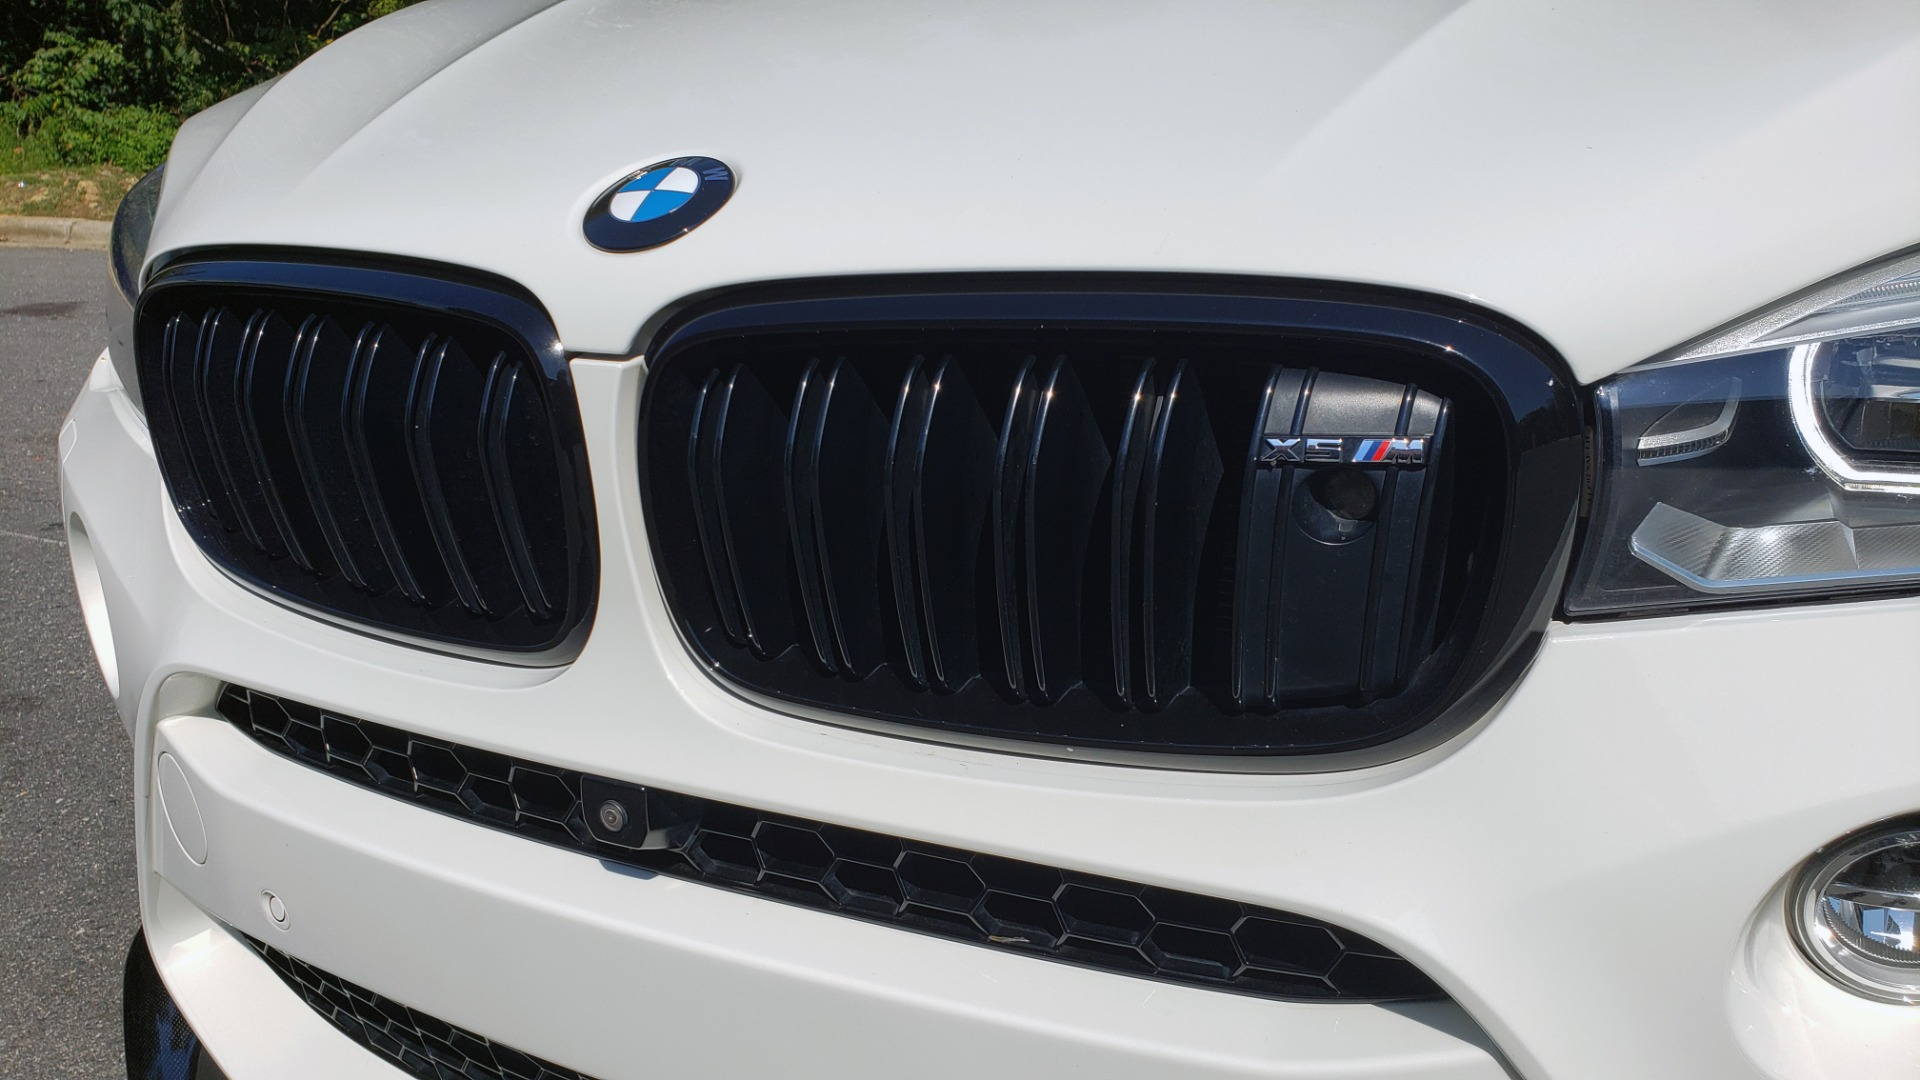 Used 2017 BMW X5 M SPORT / AWD / DRVR ASST / EXEC PKG / B&O SND / NIGHT VIS / PARK ASST for sale Sold at Formula Imports in Charlotte NC 28227 28